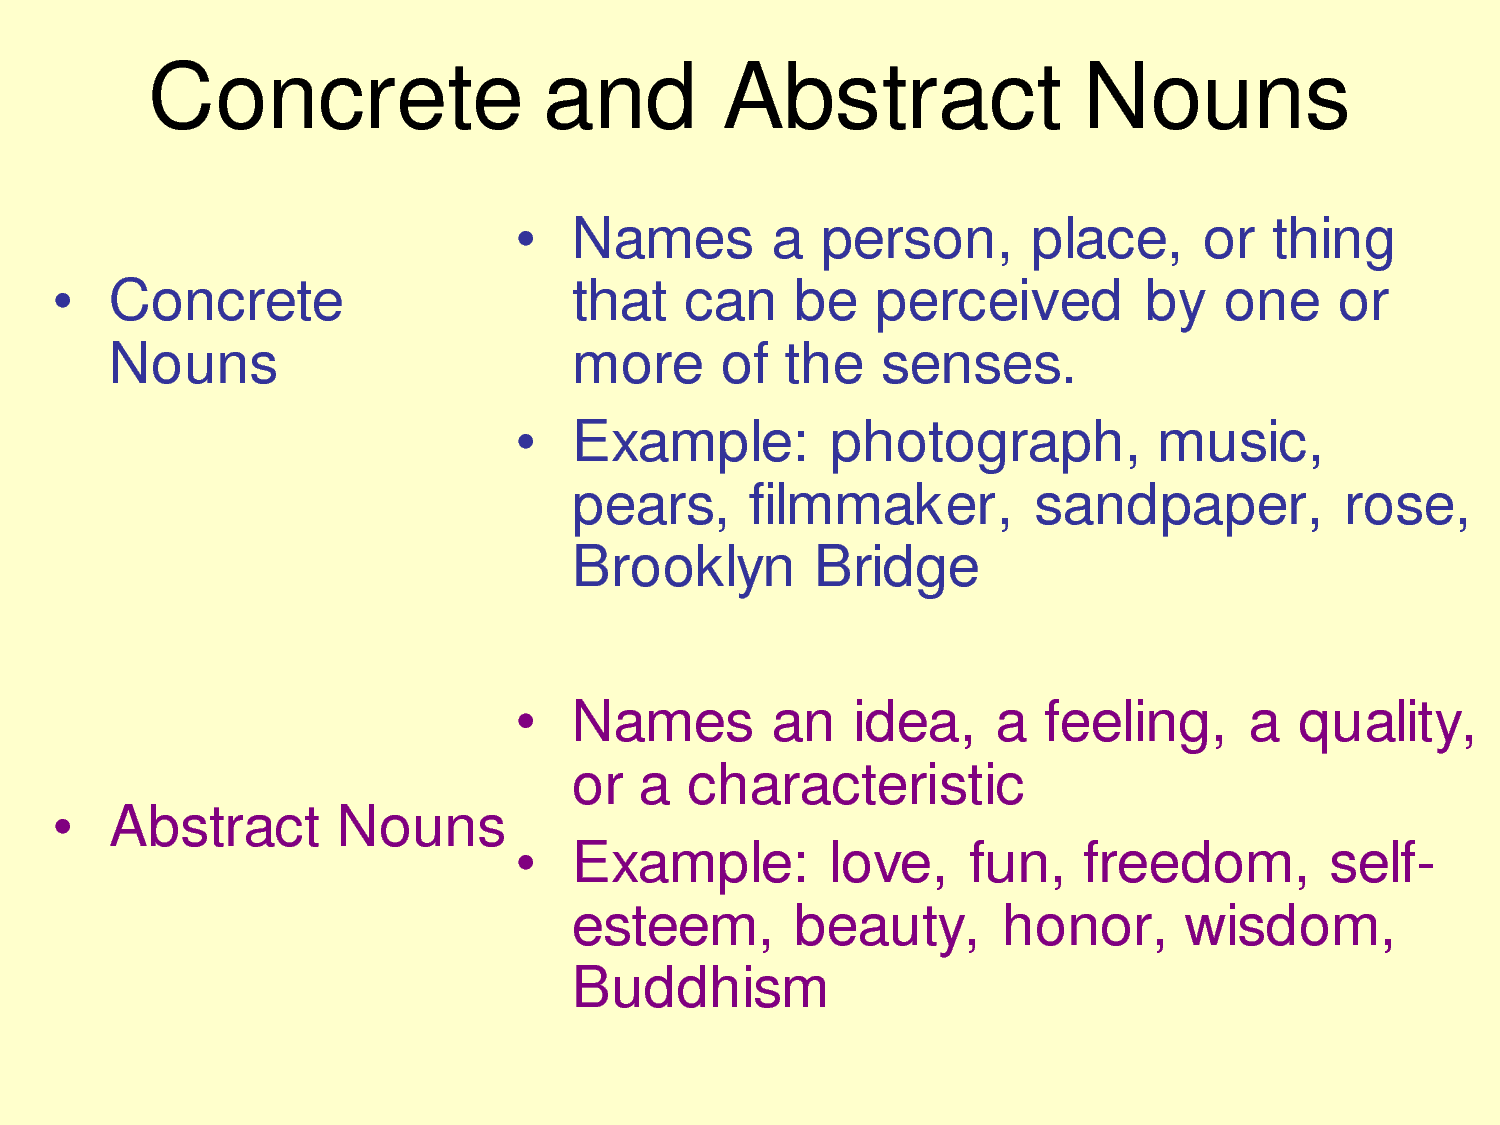 worksheet Concrete And Abstract Nouns Worksheet concrete nouns with images to share google search teaching search